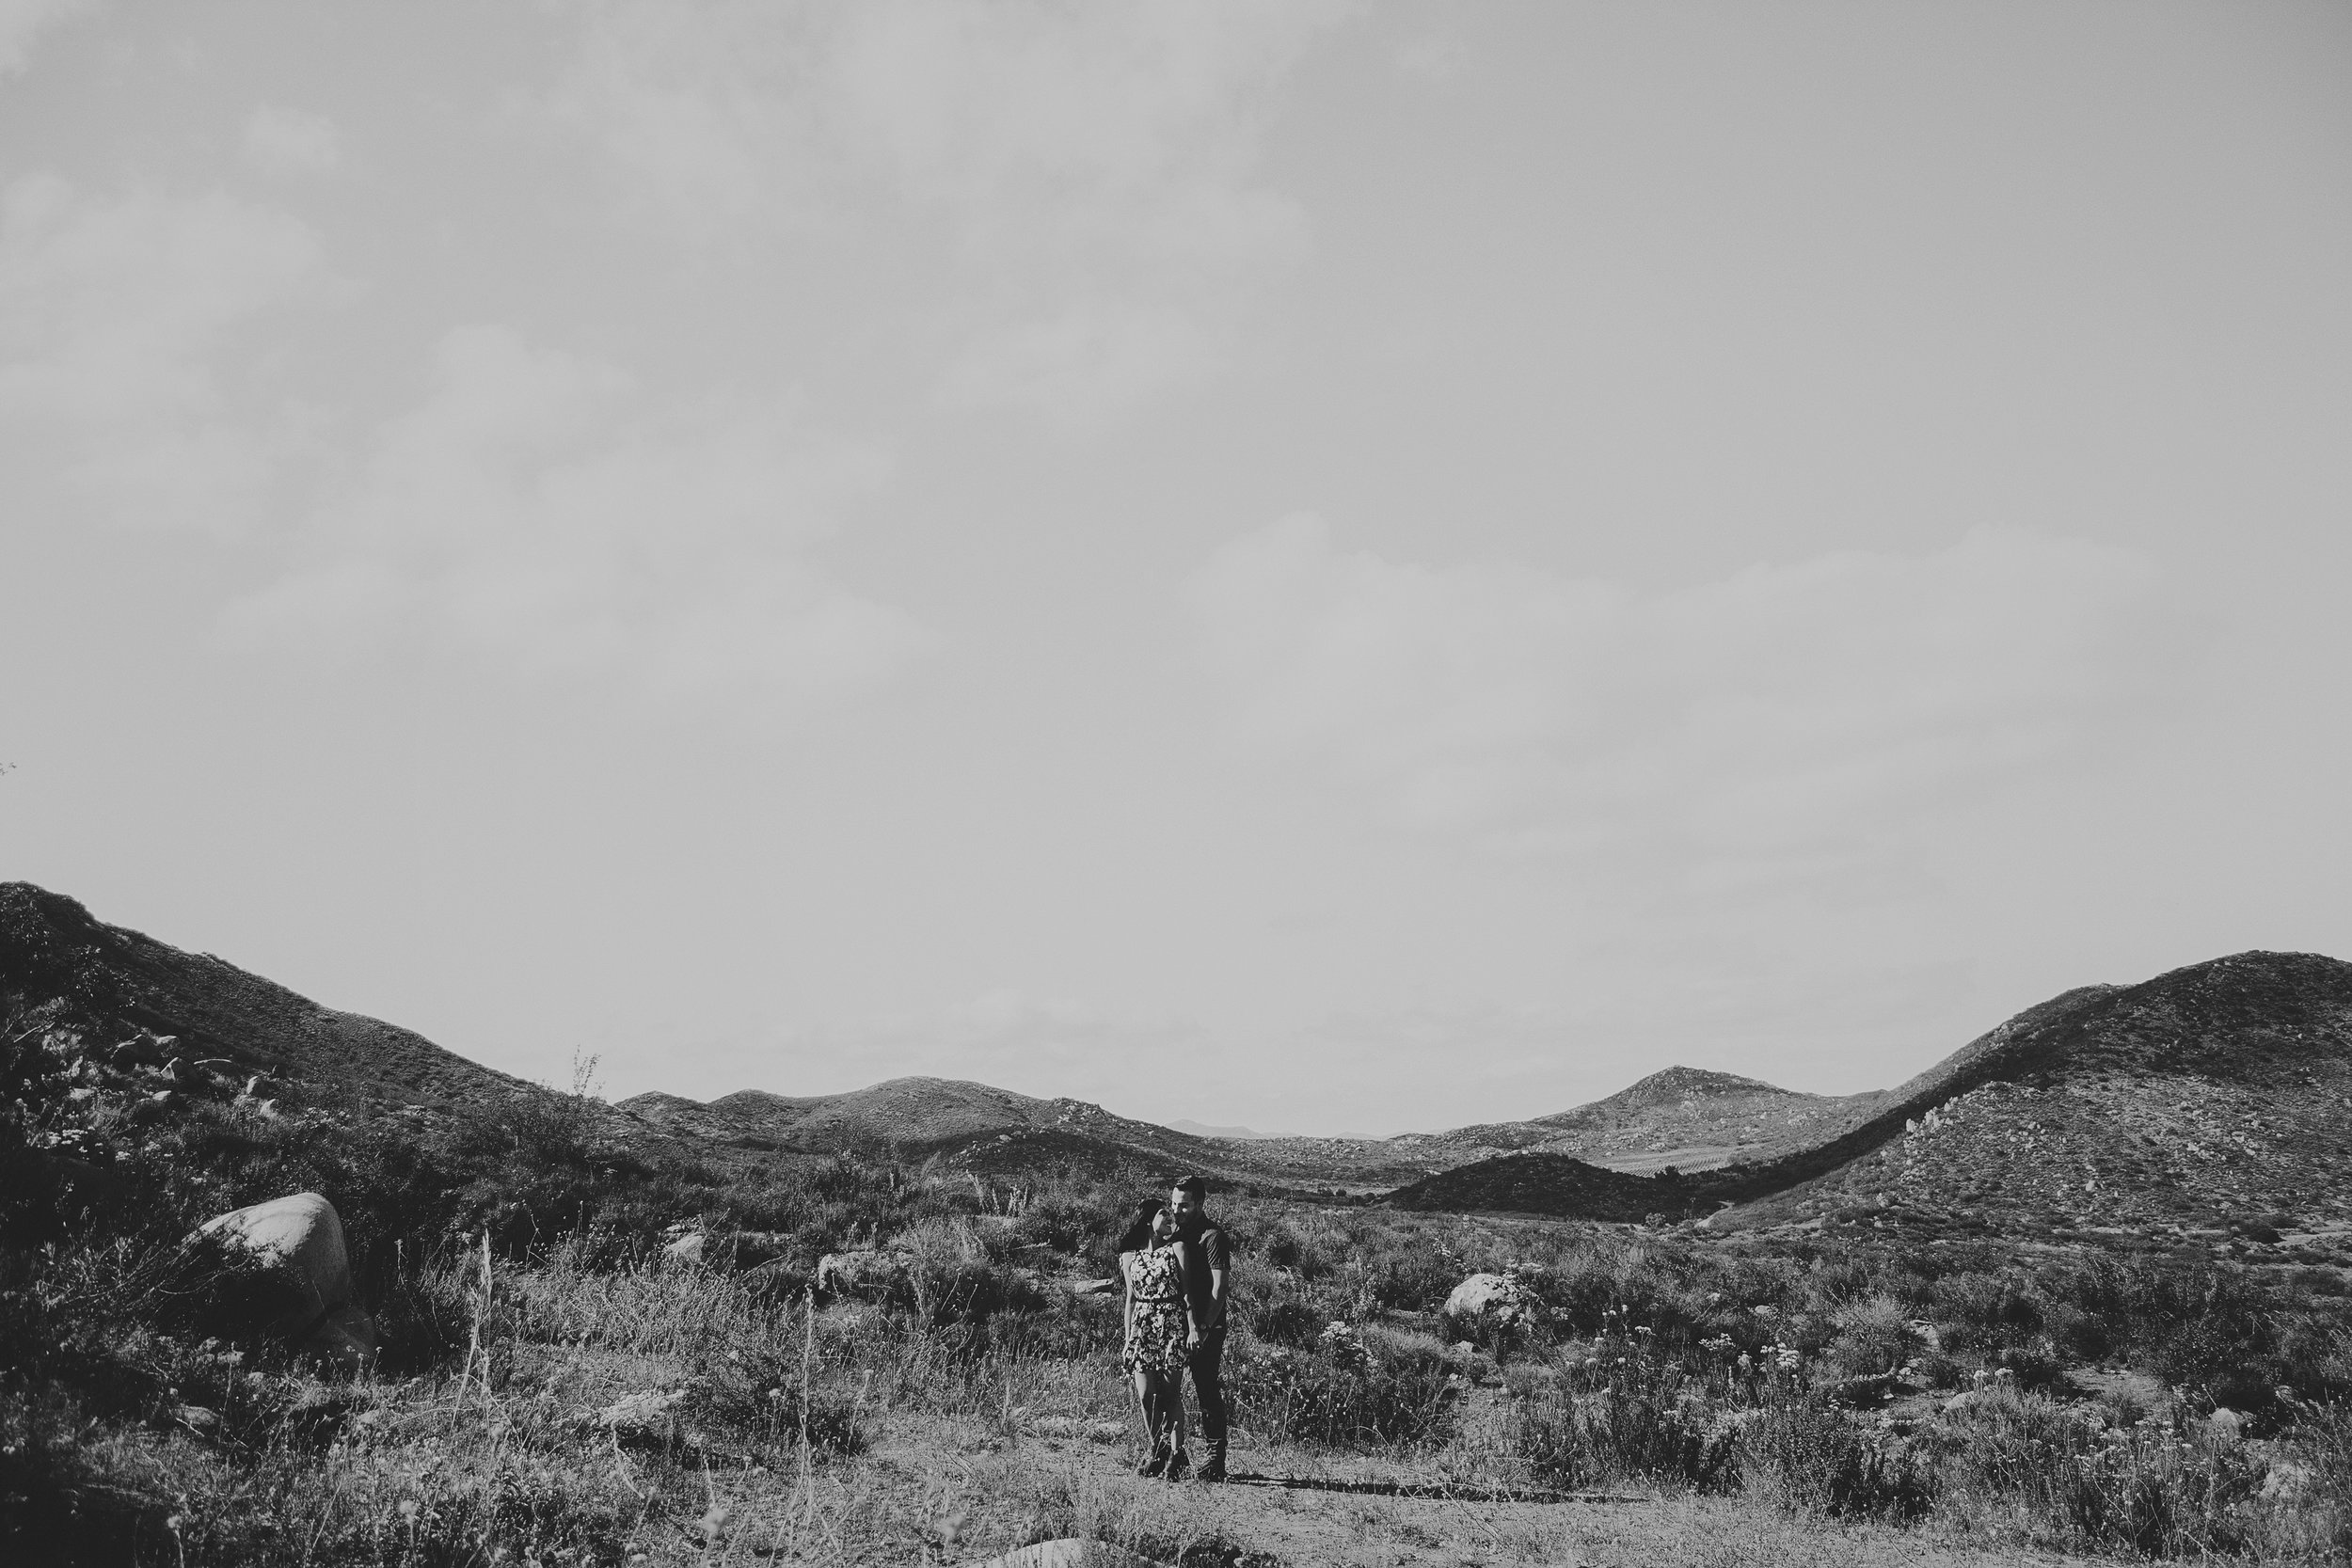 Los Ébano - Glamping Valle de Guadalupe Engagement - Janeth+Aníbal (67).jpg